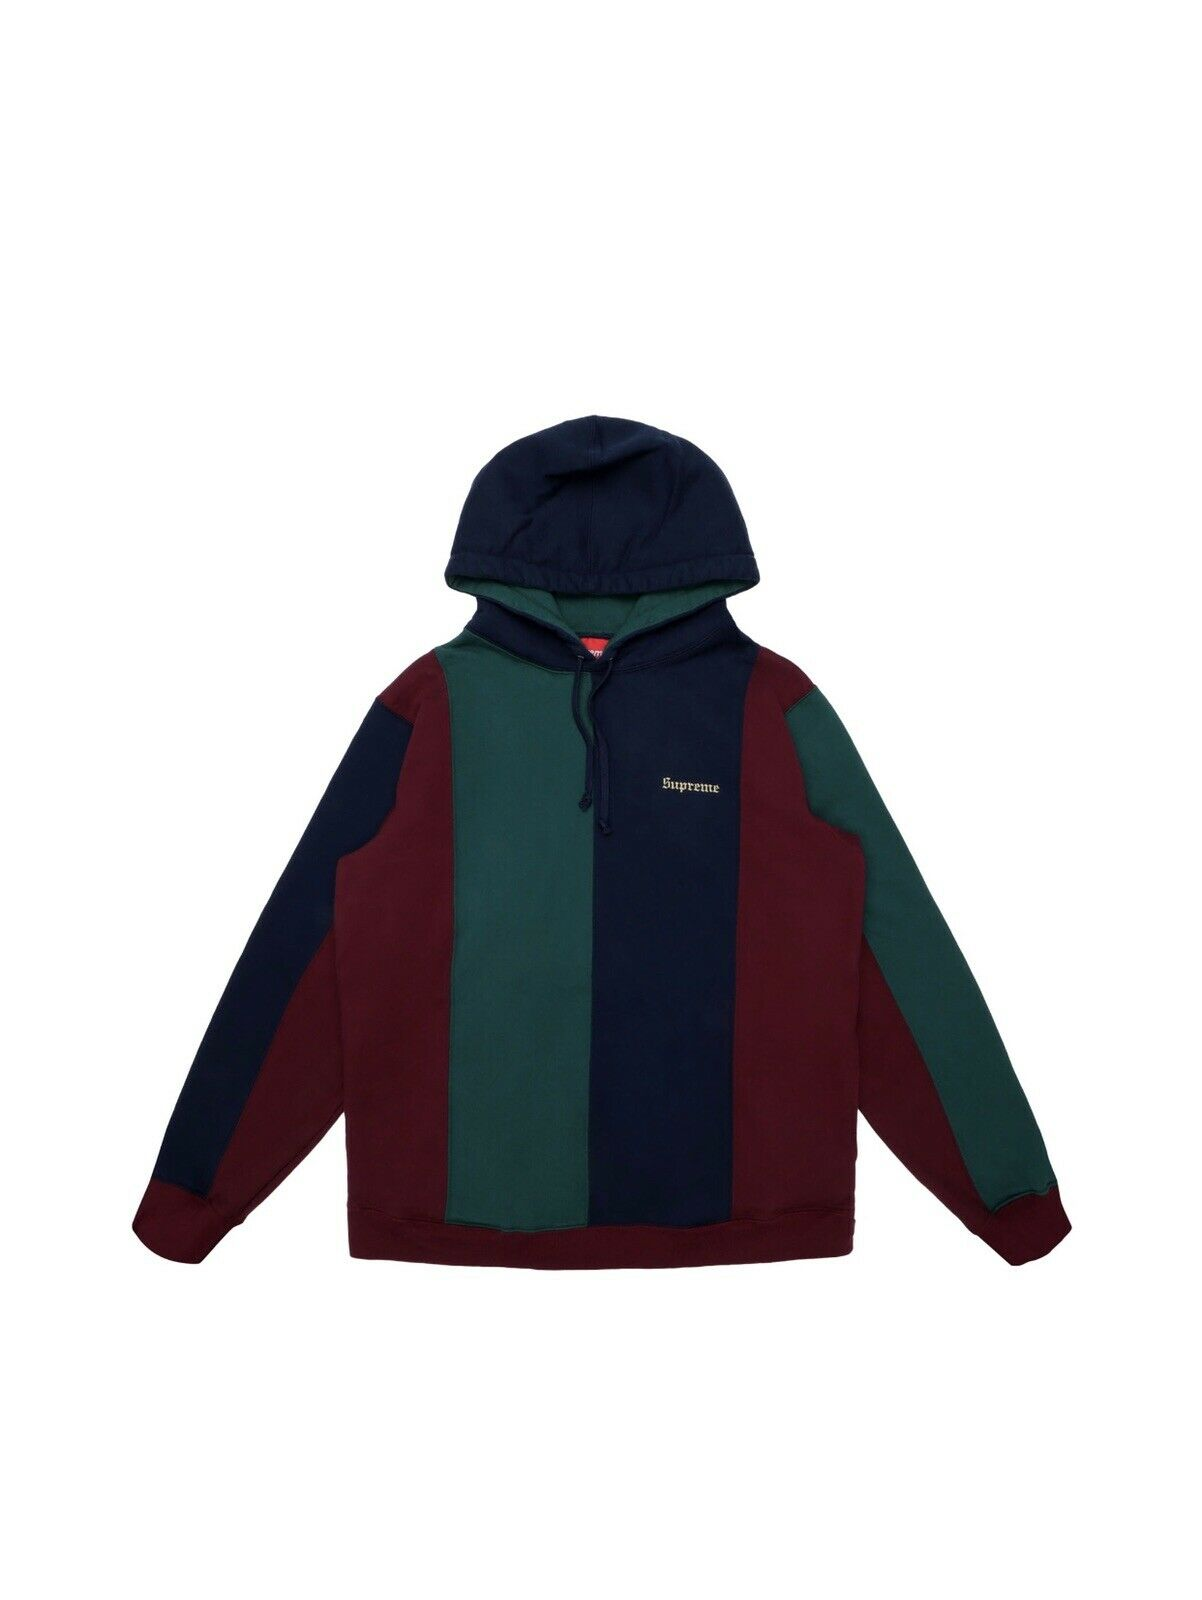 SUPREME NEW WITH TAGS TRIFarbe HOODED SWEARhemd BURGUNDY Größe M FALL 2017